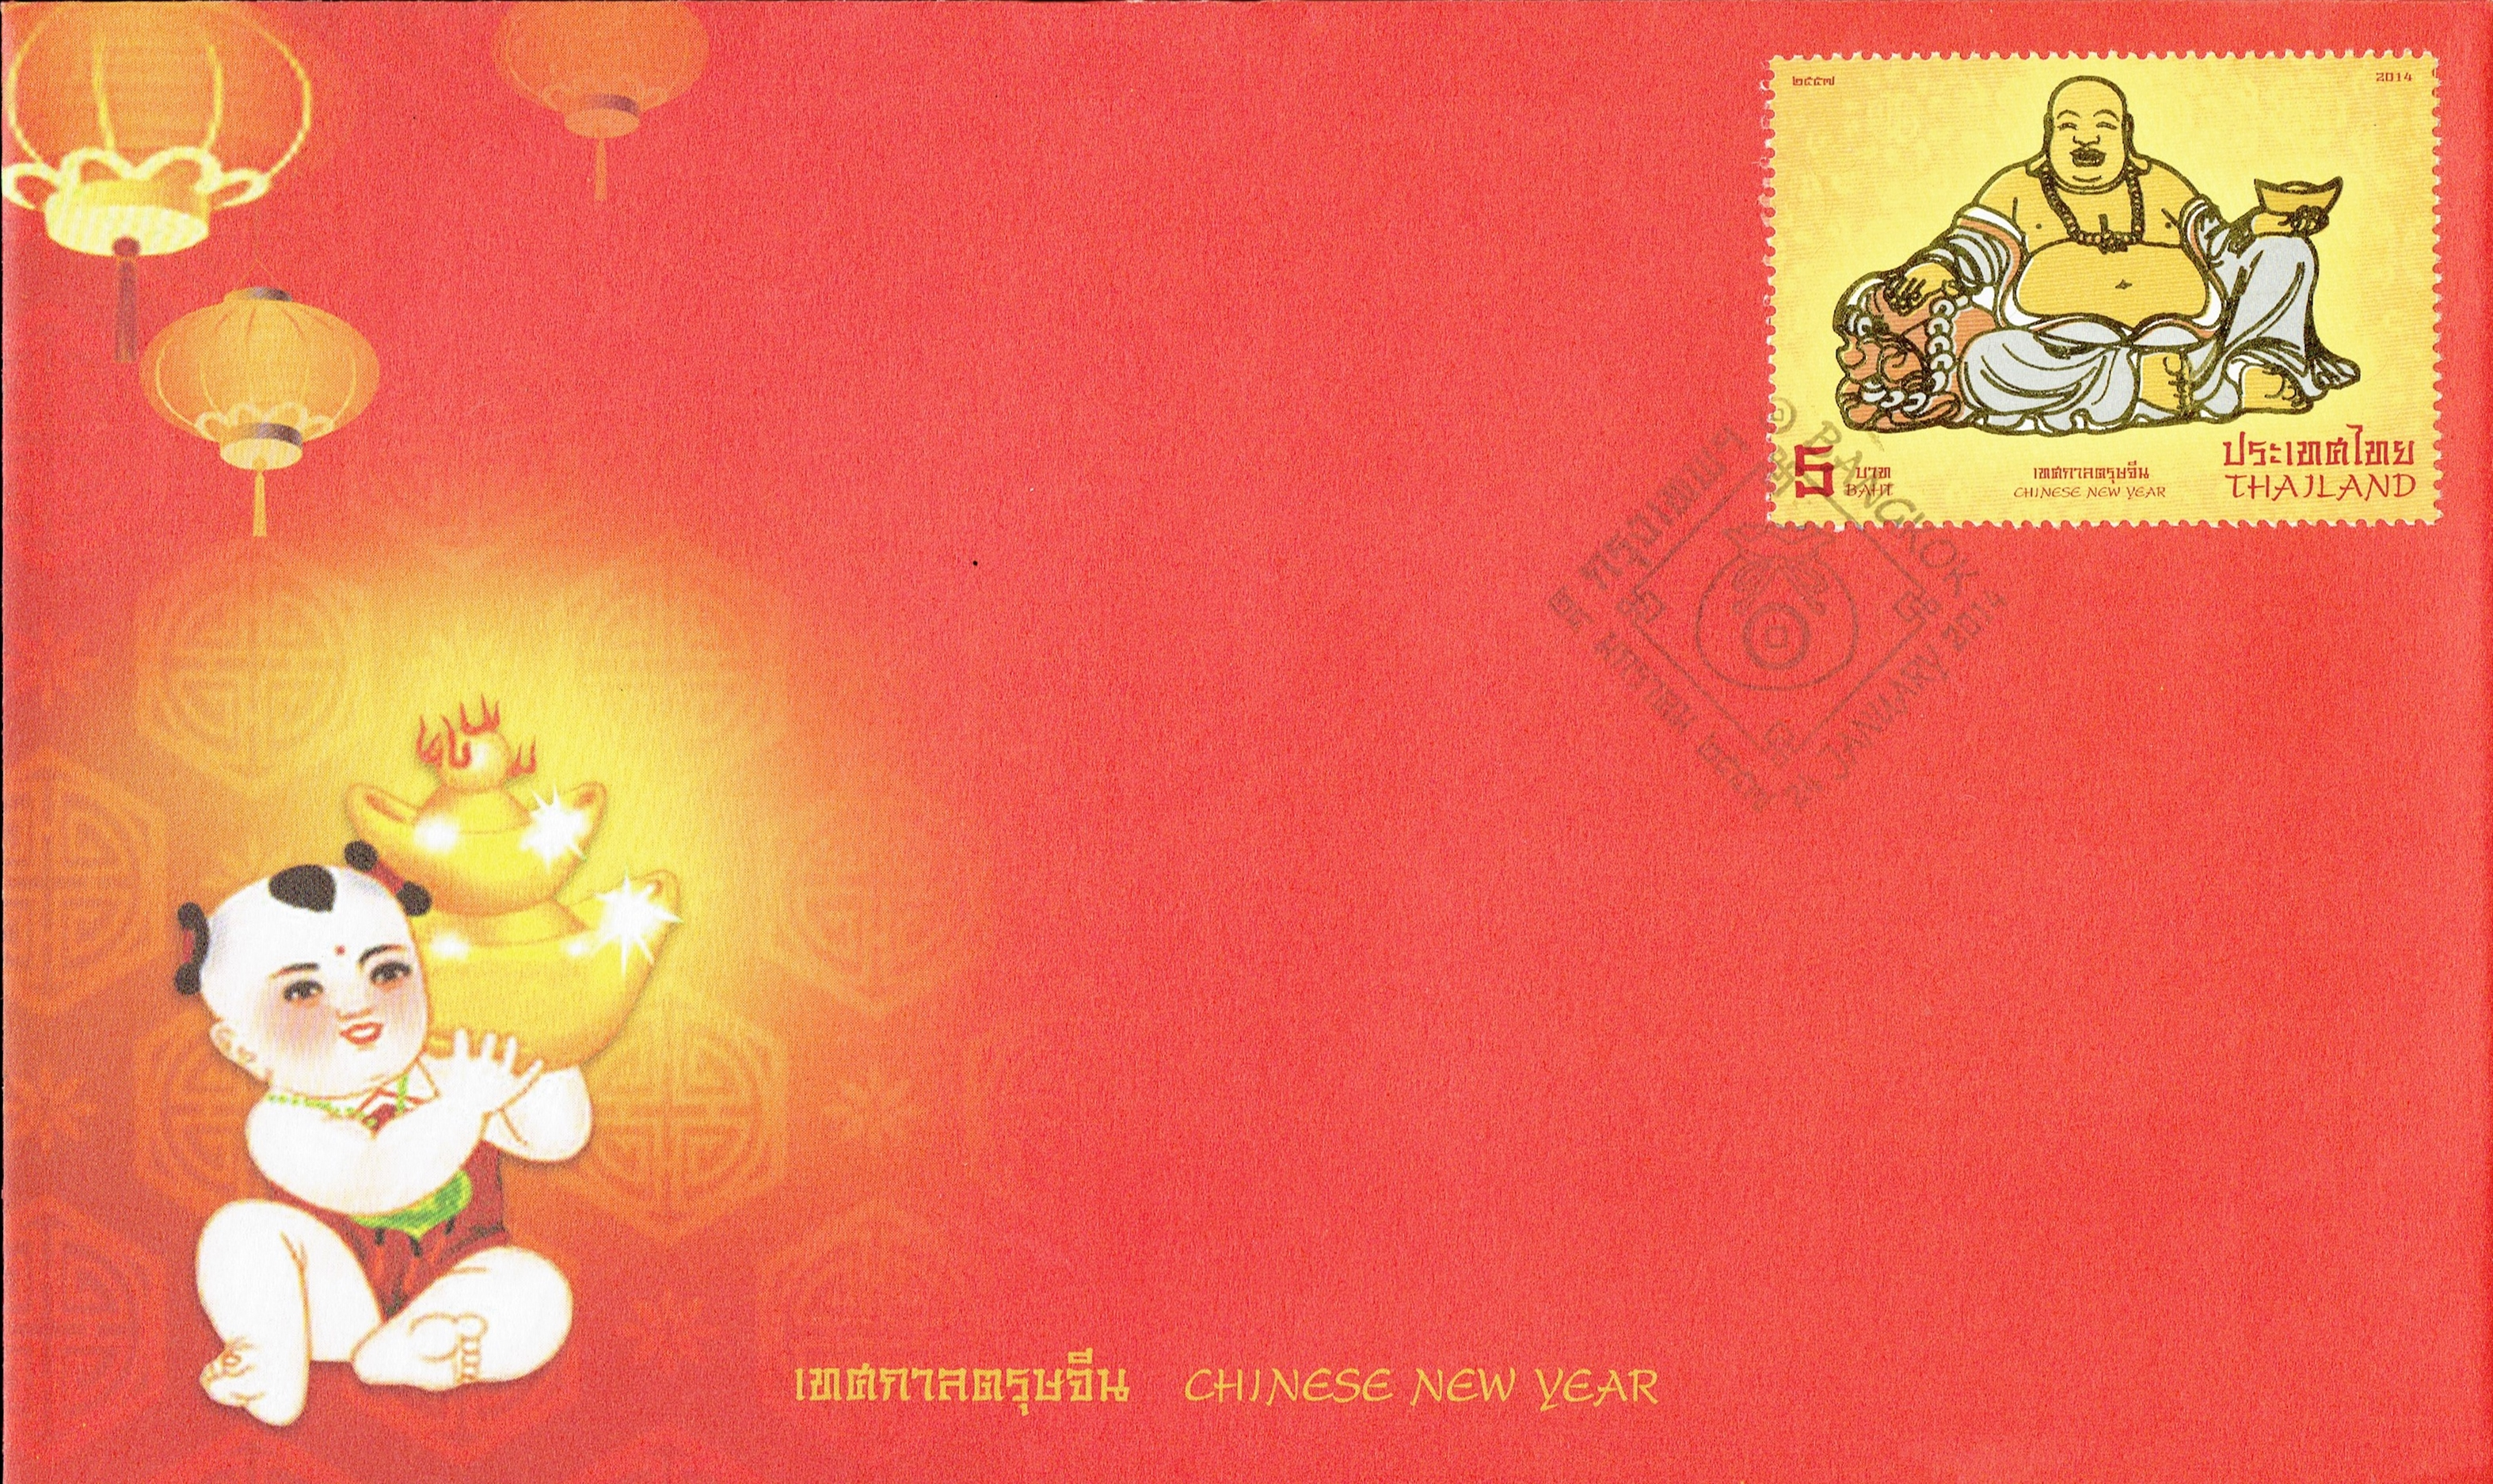 Thailand - Thailand Post #TH-1033 (2014) first day cover